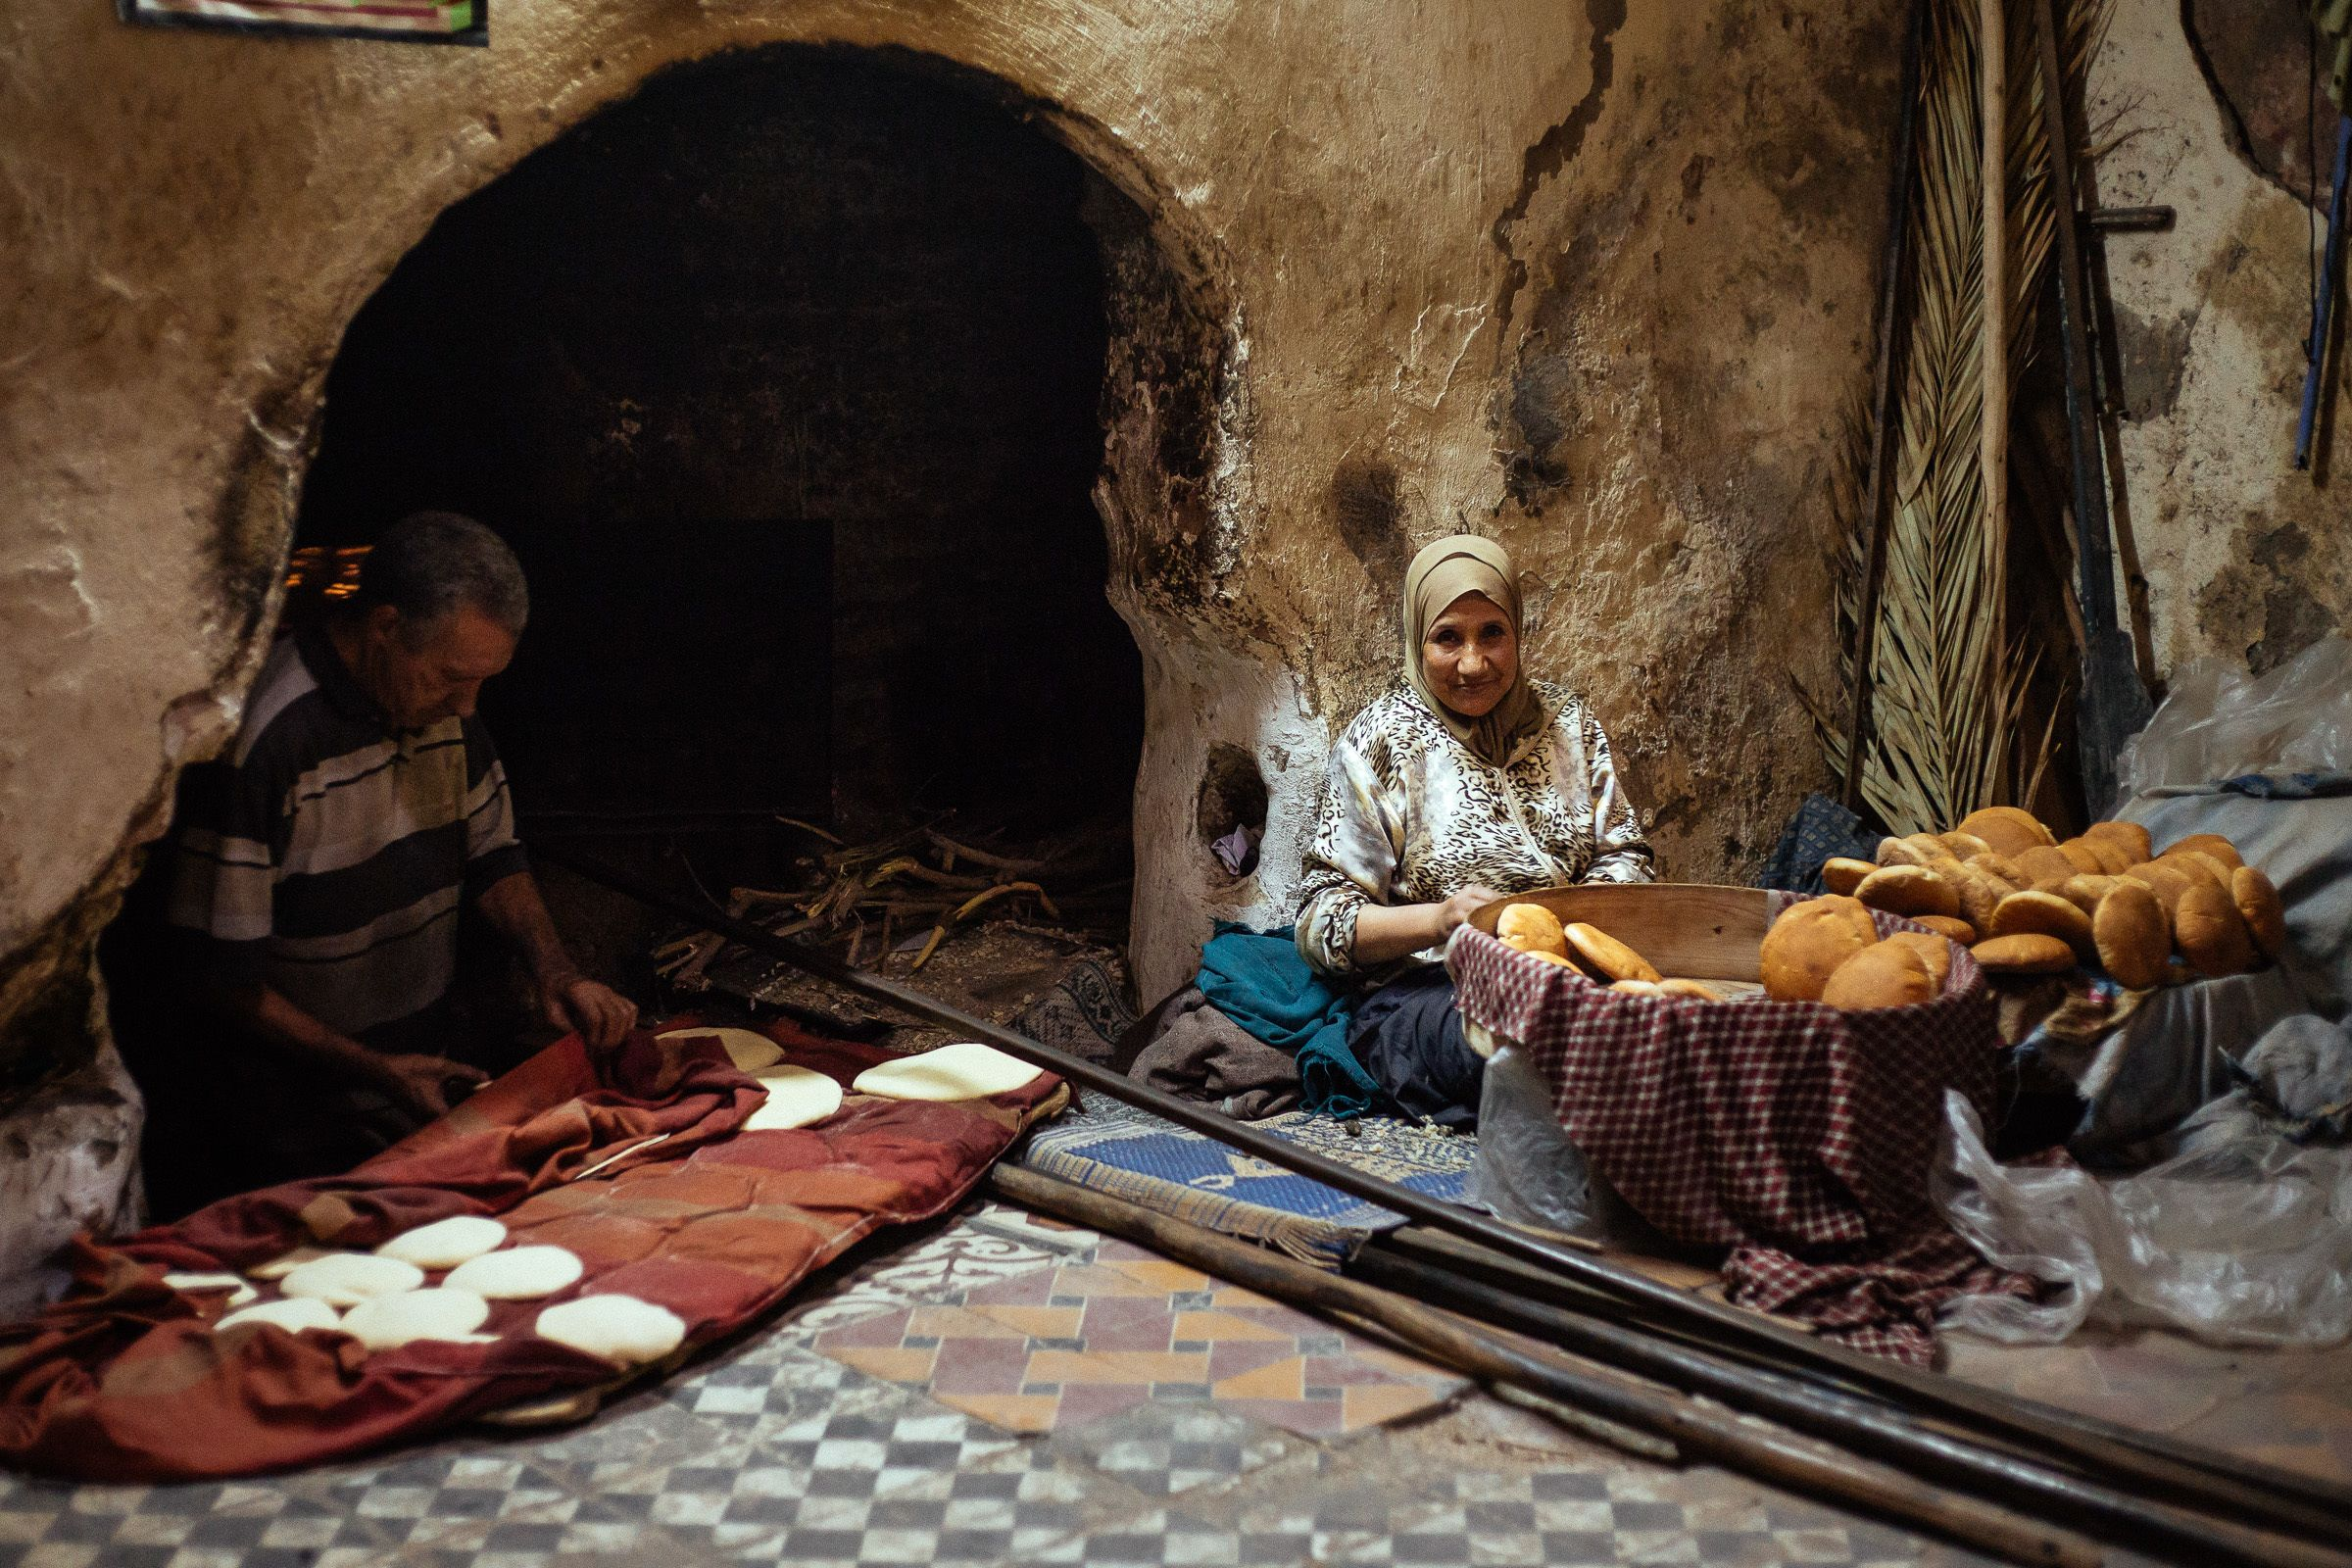 Two locals making bread in Marrakech